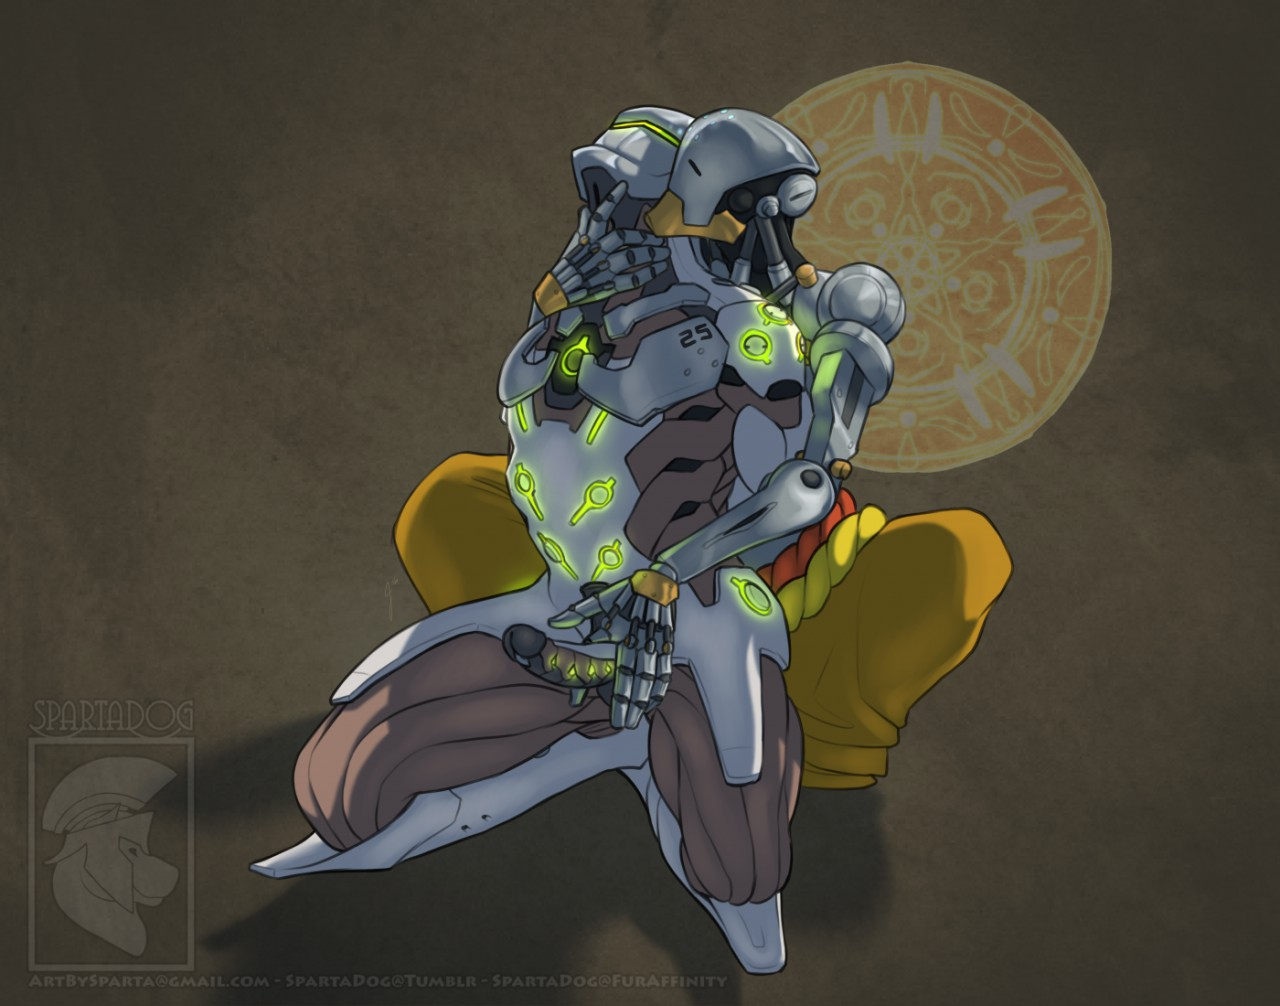 Zenyatta and Genji